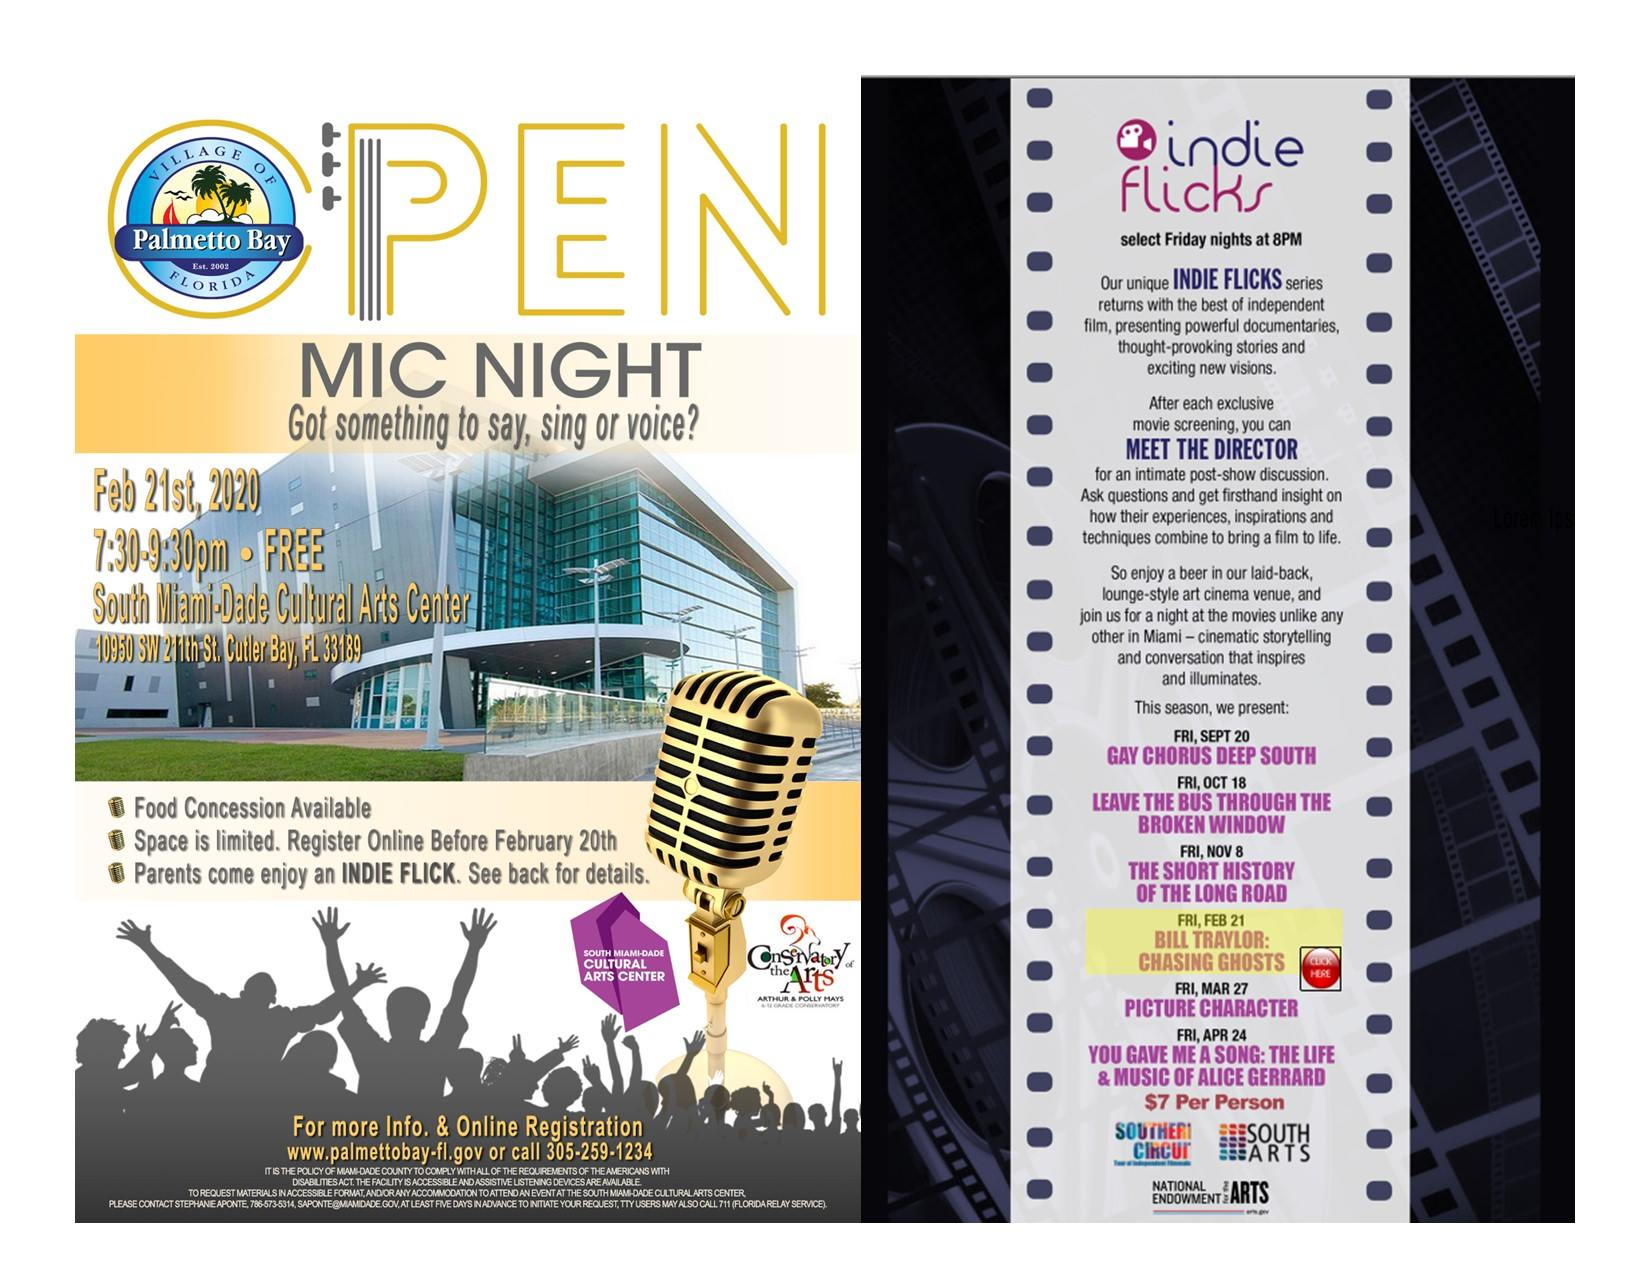 Open Mic Night: Got something to say, sing or voice? On Friday, February 21st from 7:30 - 9:30 p.m.